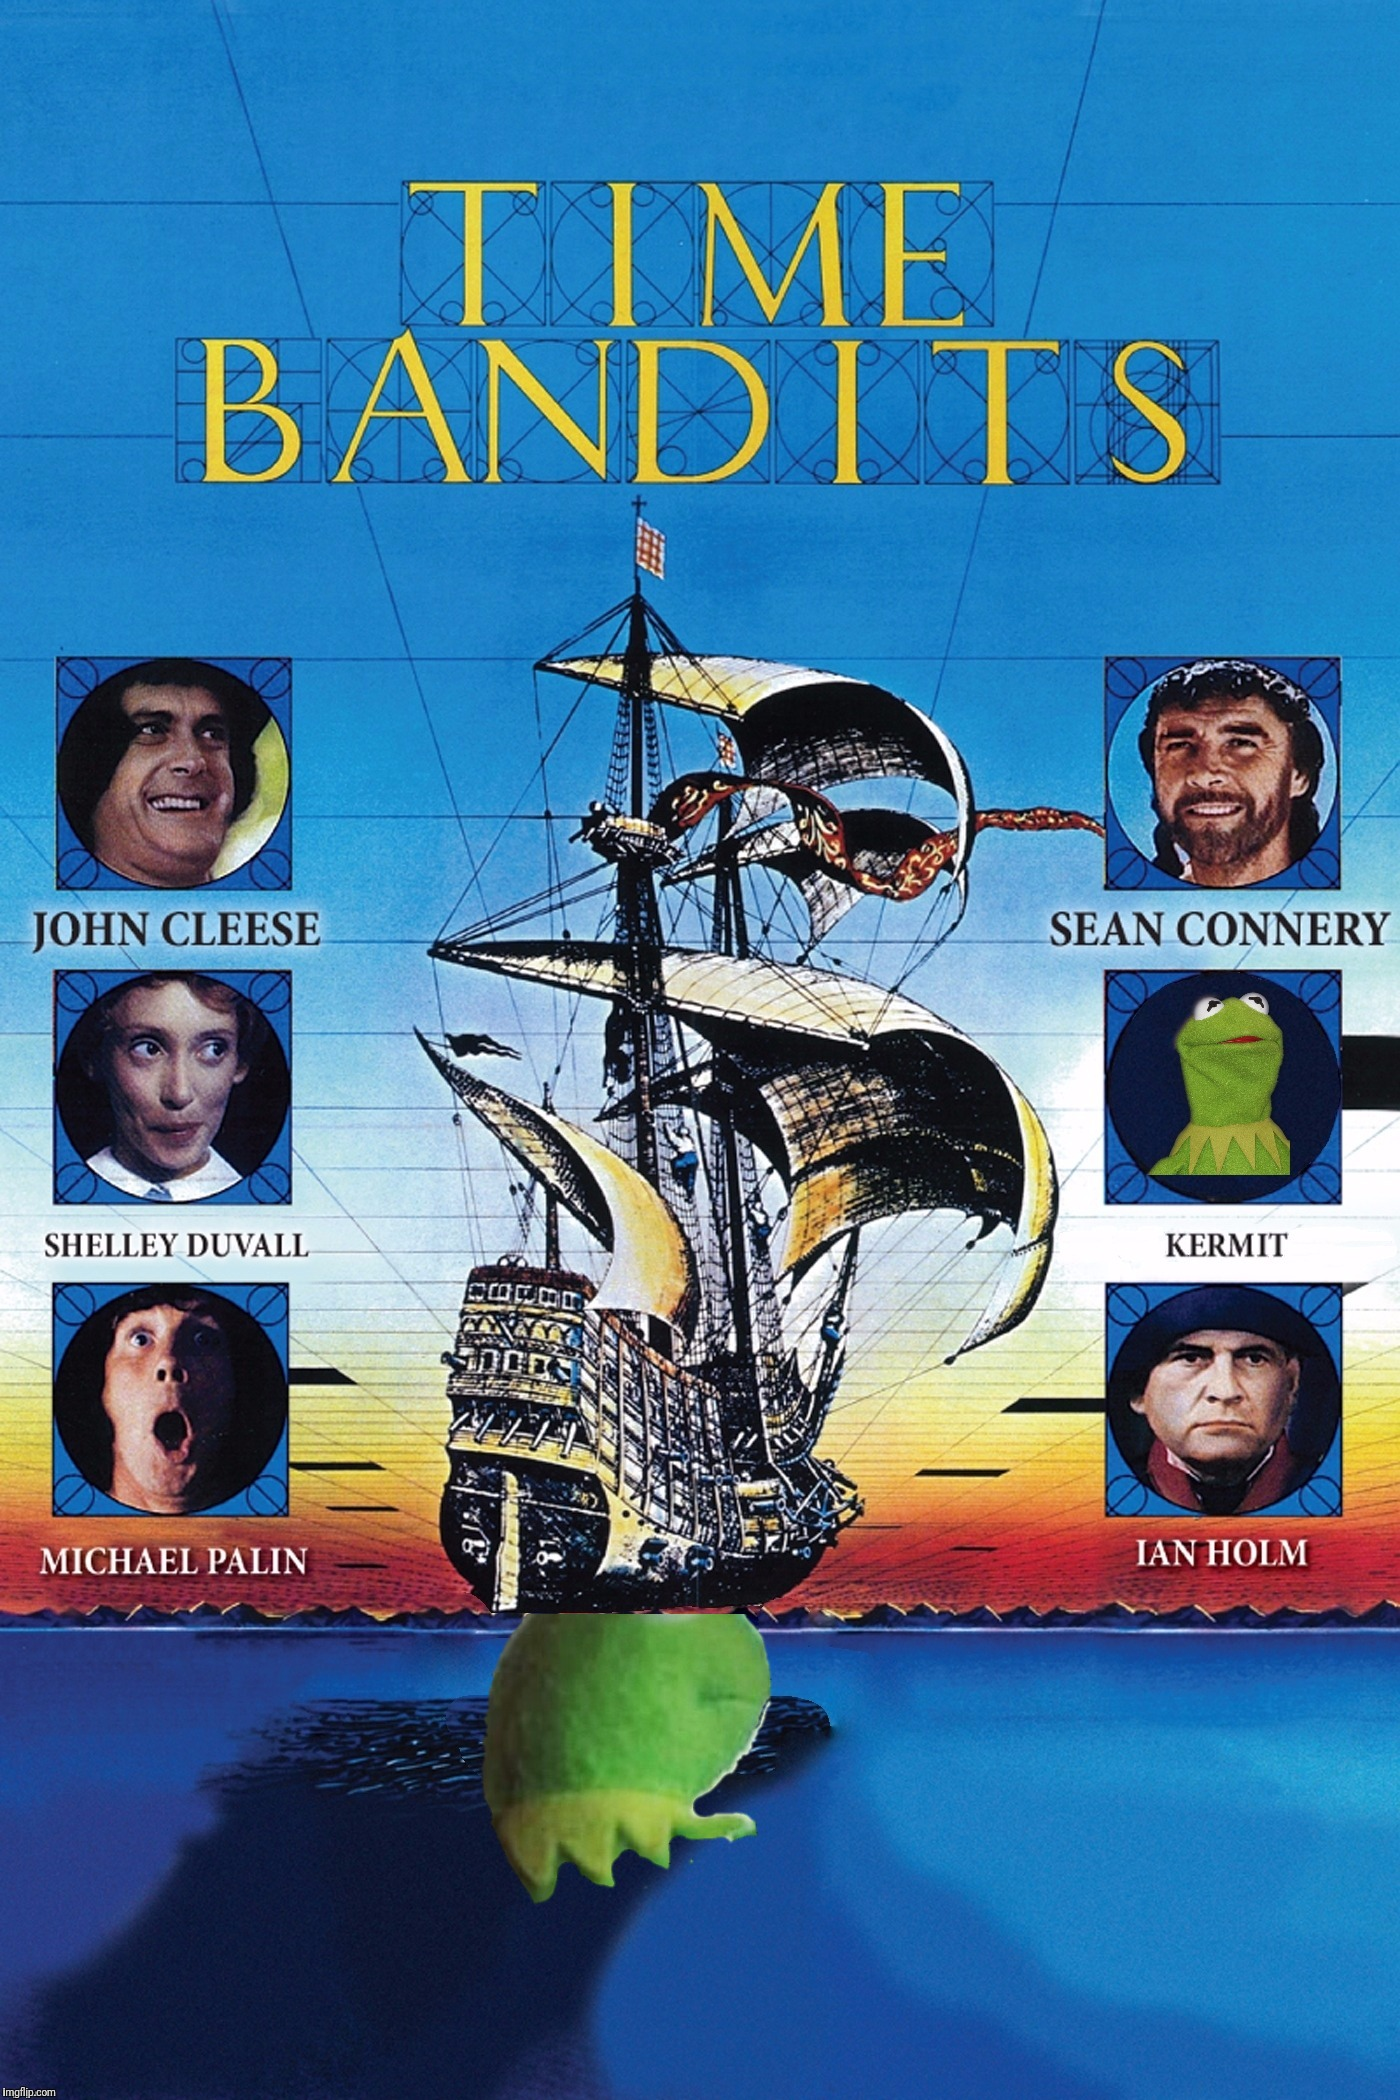 Time Bandits Connery Takes Kermit In As His Own Son How